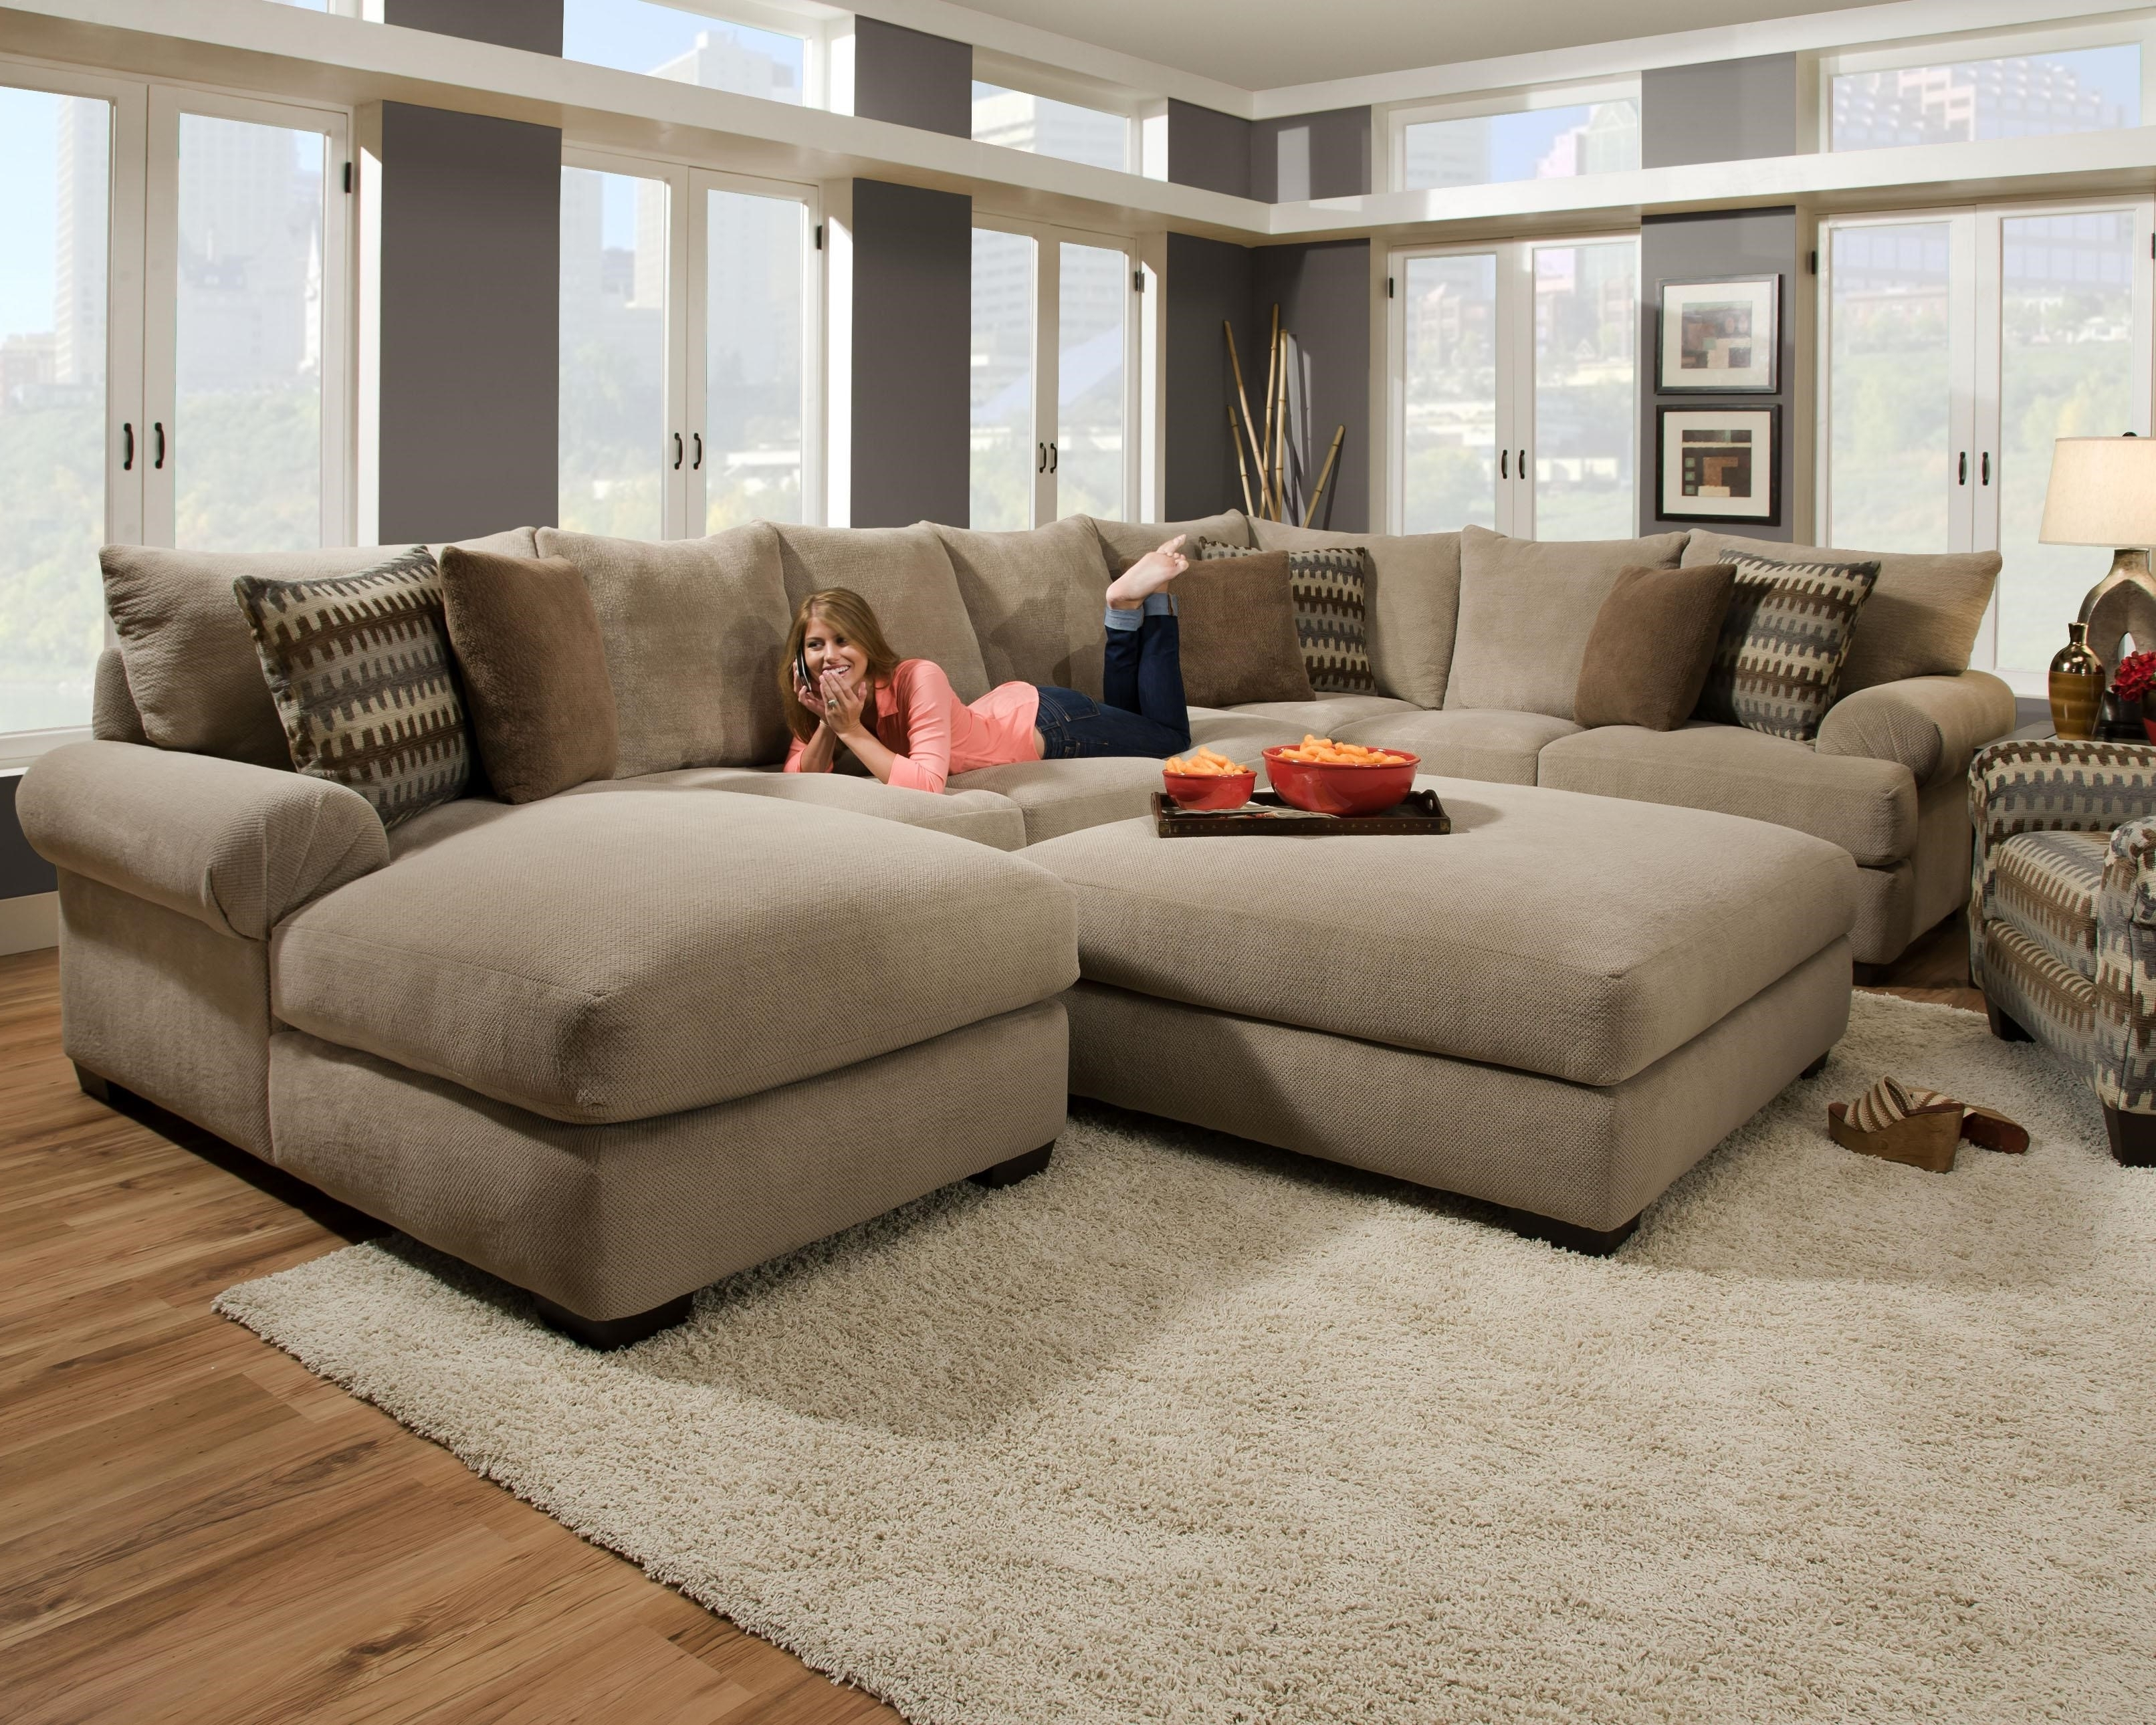 Favorite Oversized Sectional Sofas Cheap – Hotelsbacau Regarding Sectionals With Chaise And Ottoman (View 1 of 20)